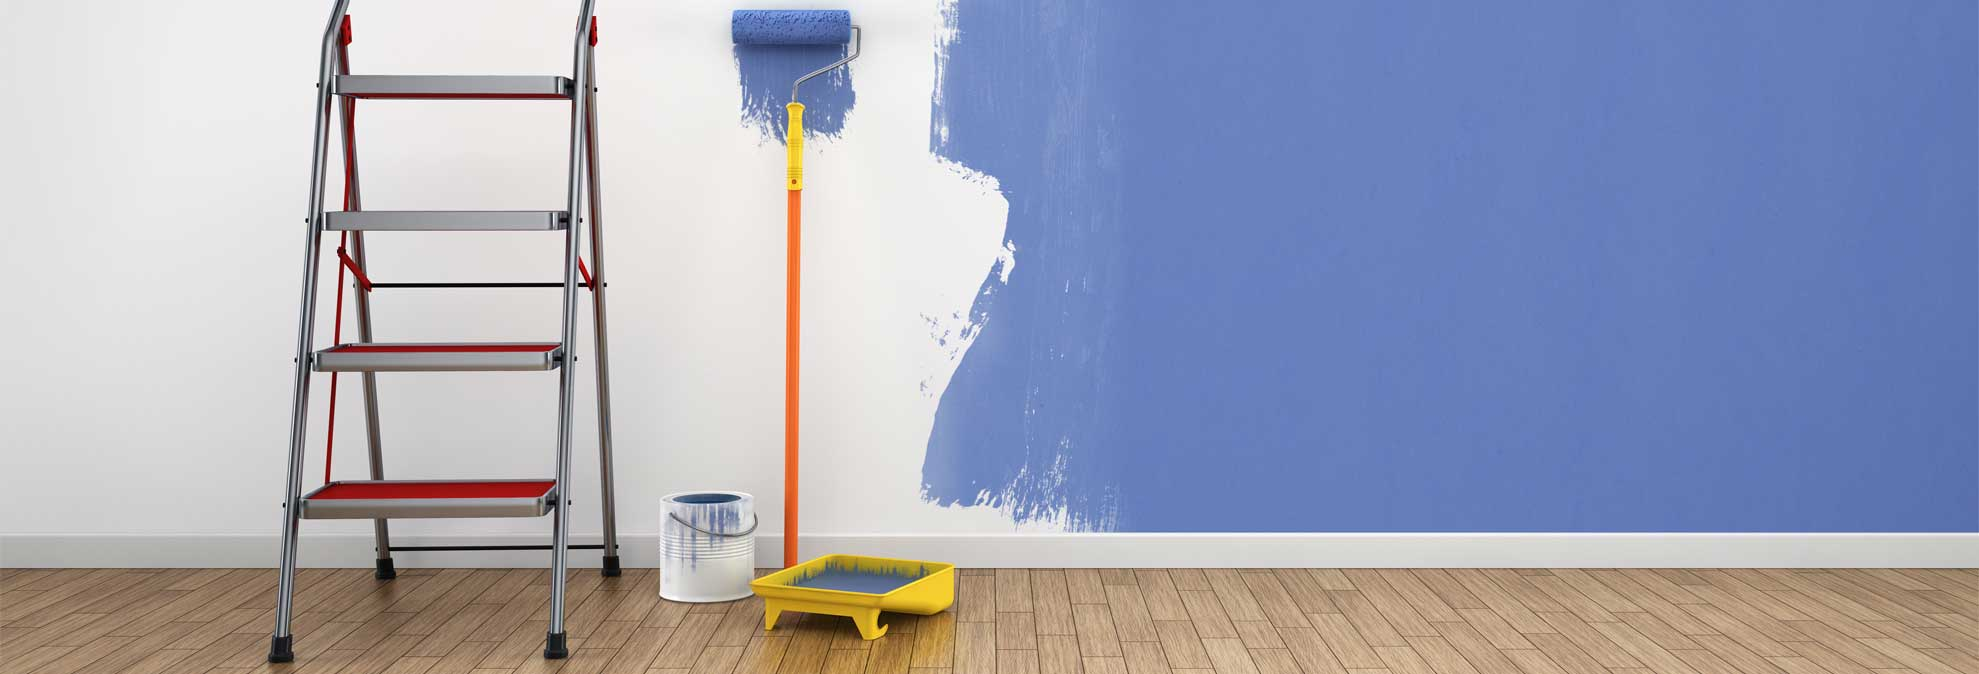 Paint A Room Over Presidents Day Weekend Consumer Reports